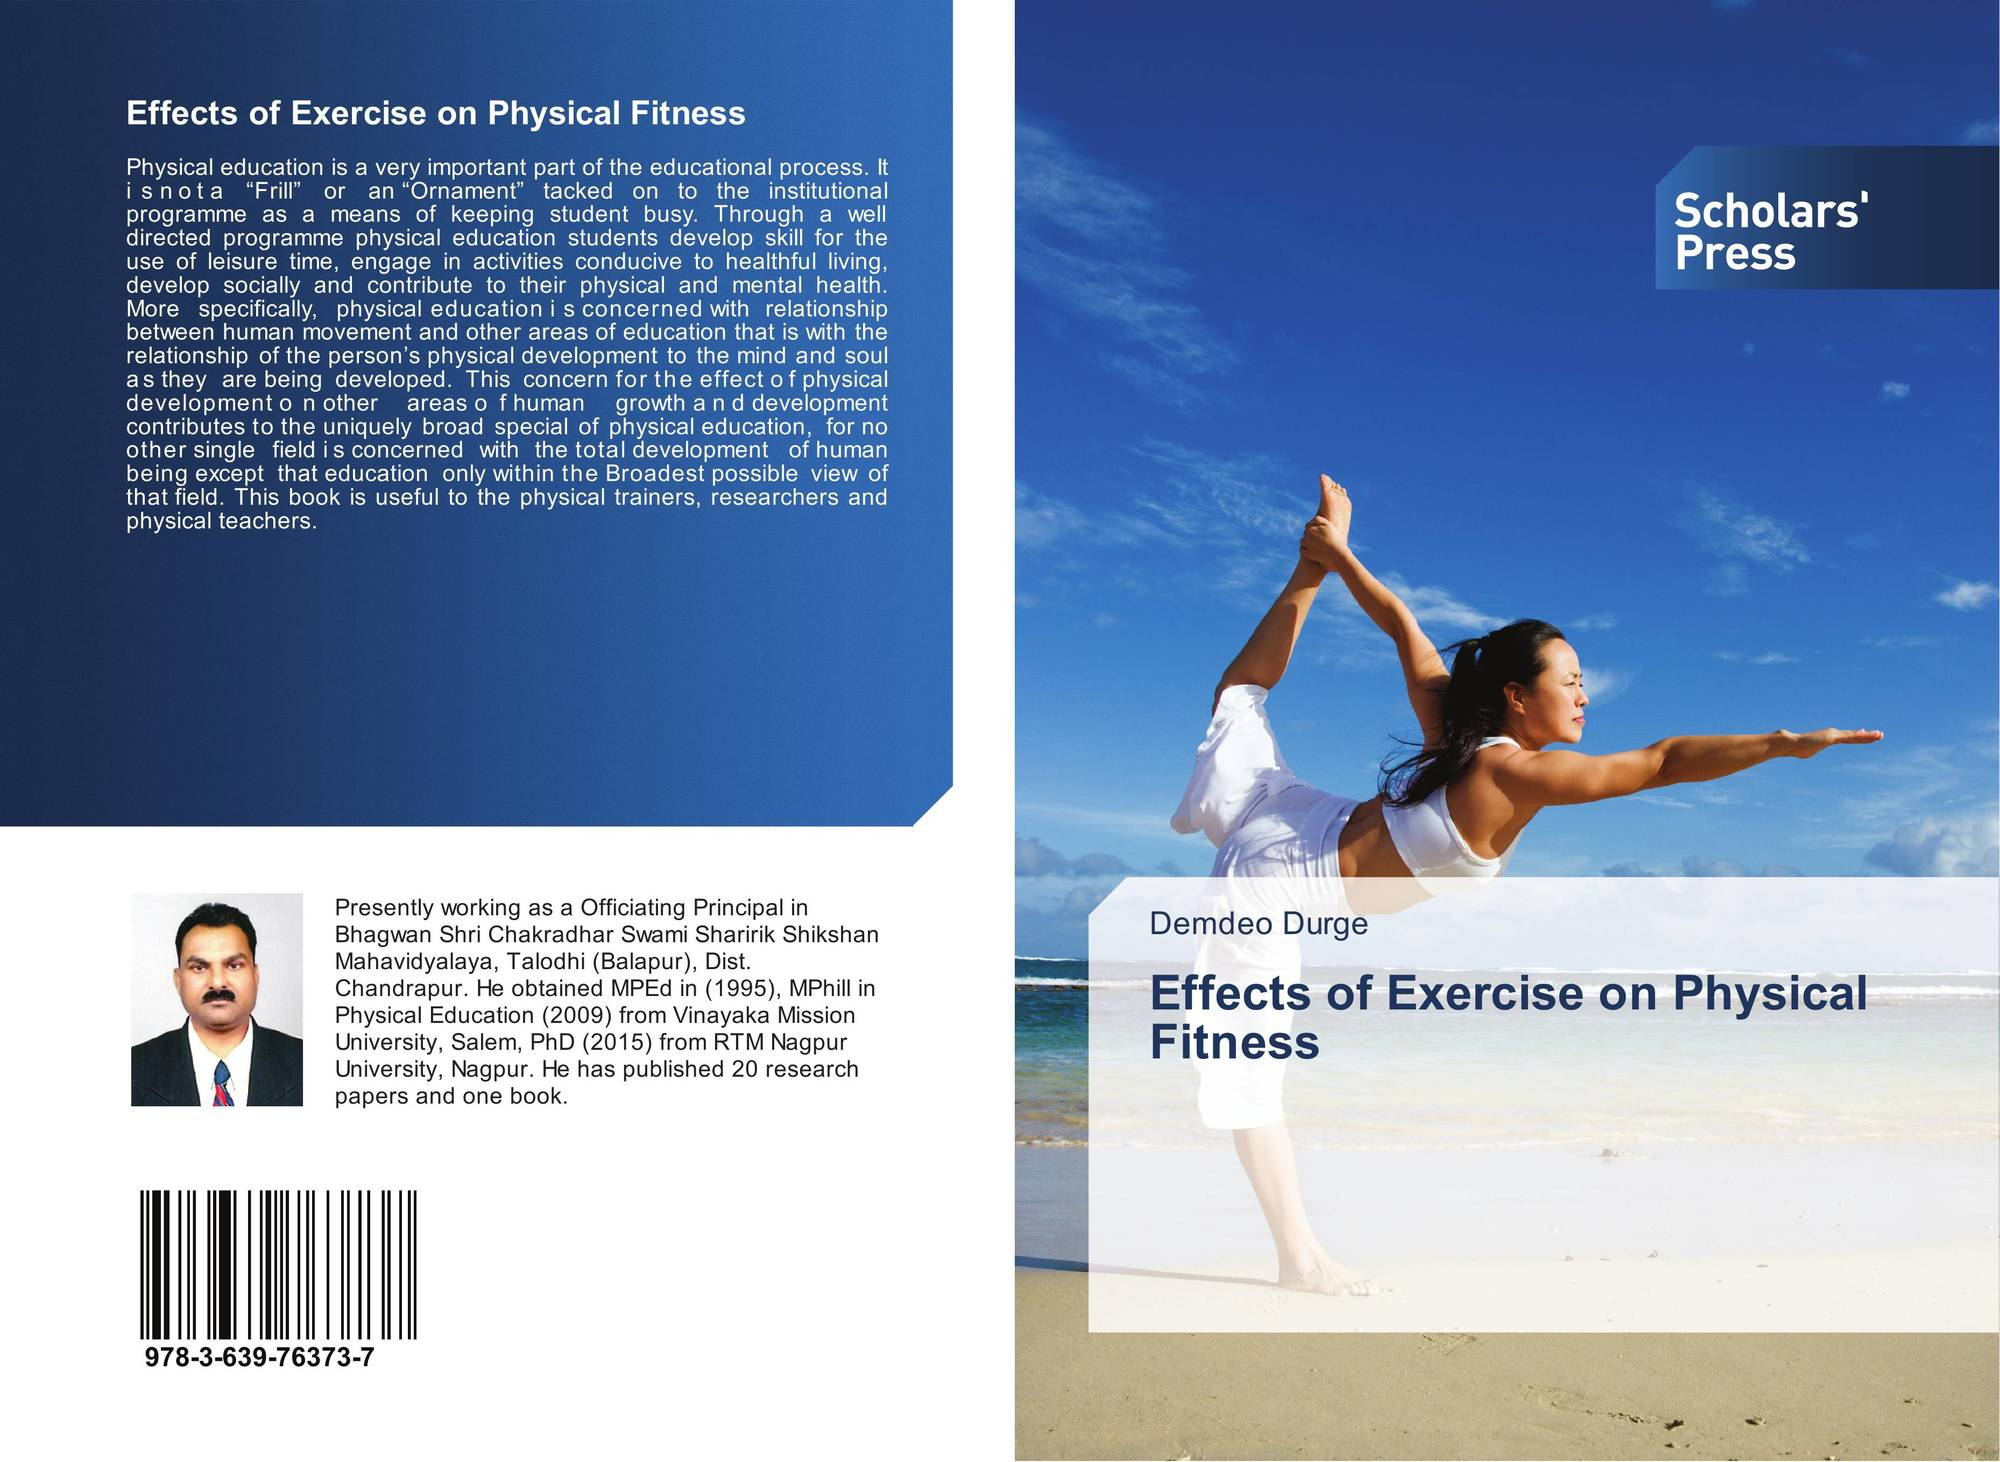 the effect of exercise on a persons Personality of the excessive exerciser personality and individual differences, 22, 775-778google scholar imm, p s, & pruitt, j (1991) stein, p n, & motta, r w (1992) effects of aerobic and nonaerobic exercise on depression and self-concept.